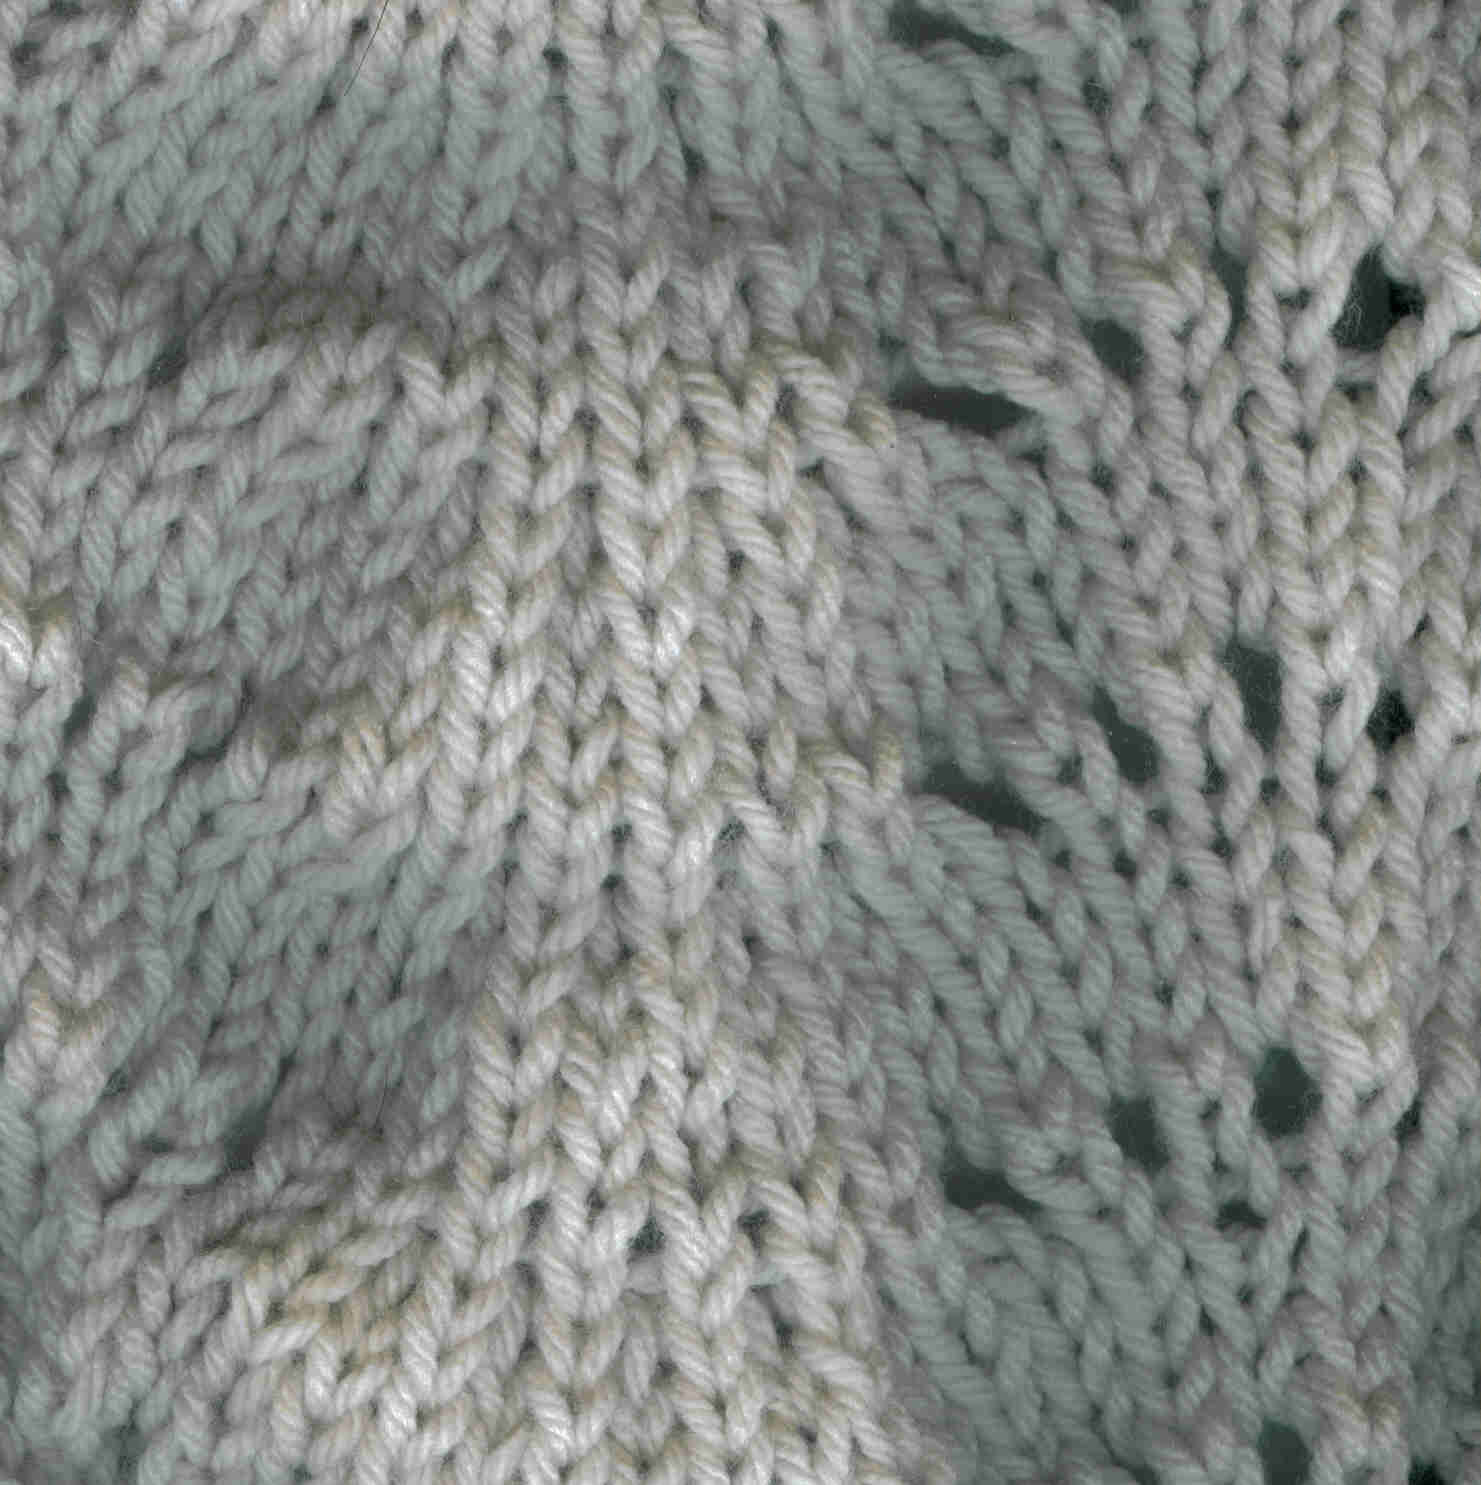 Seashell Knitting Pattern : jbarrett5: glossary and sample pictures of knit stitches